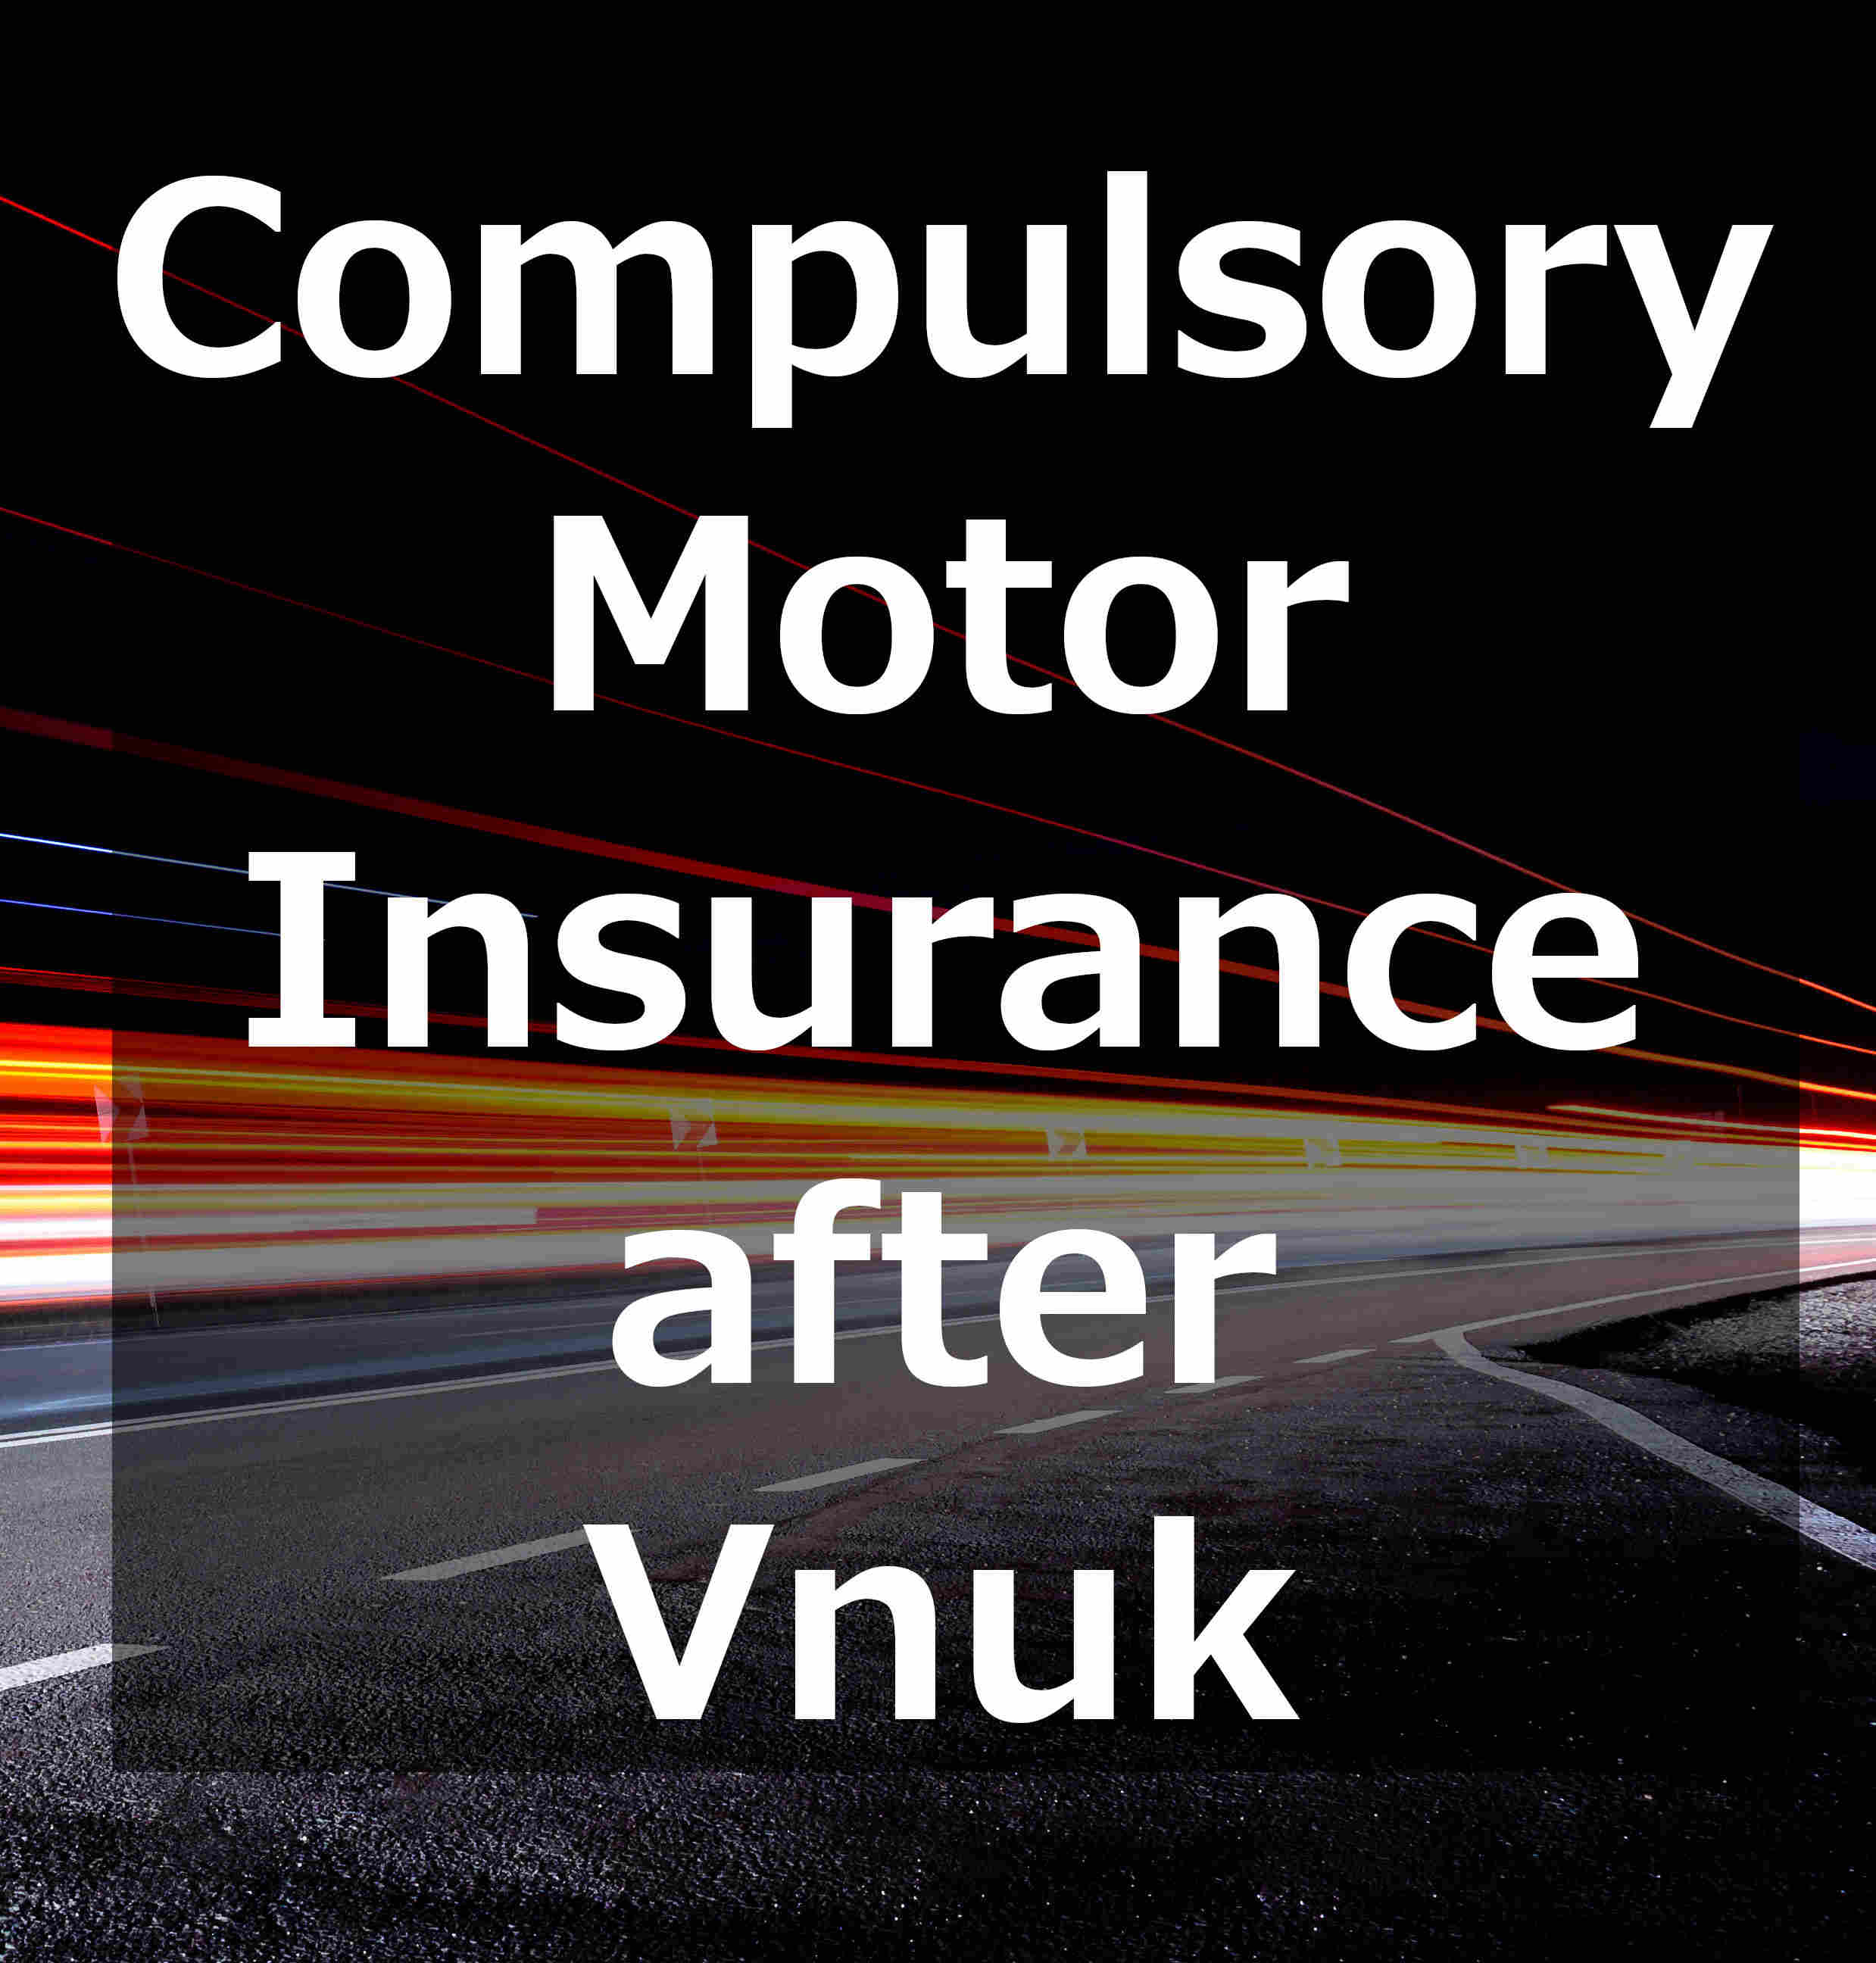 compulsory motor insurance after VNUK